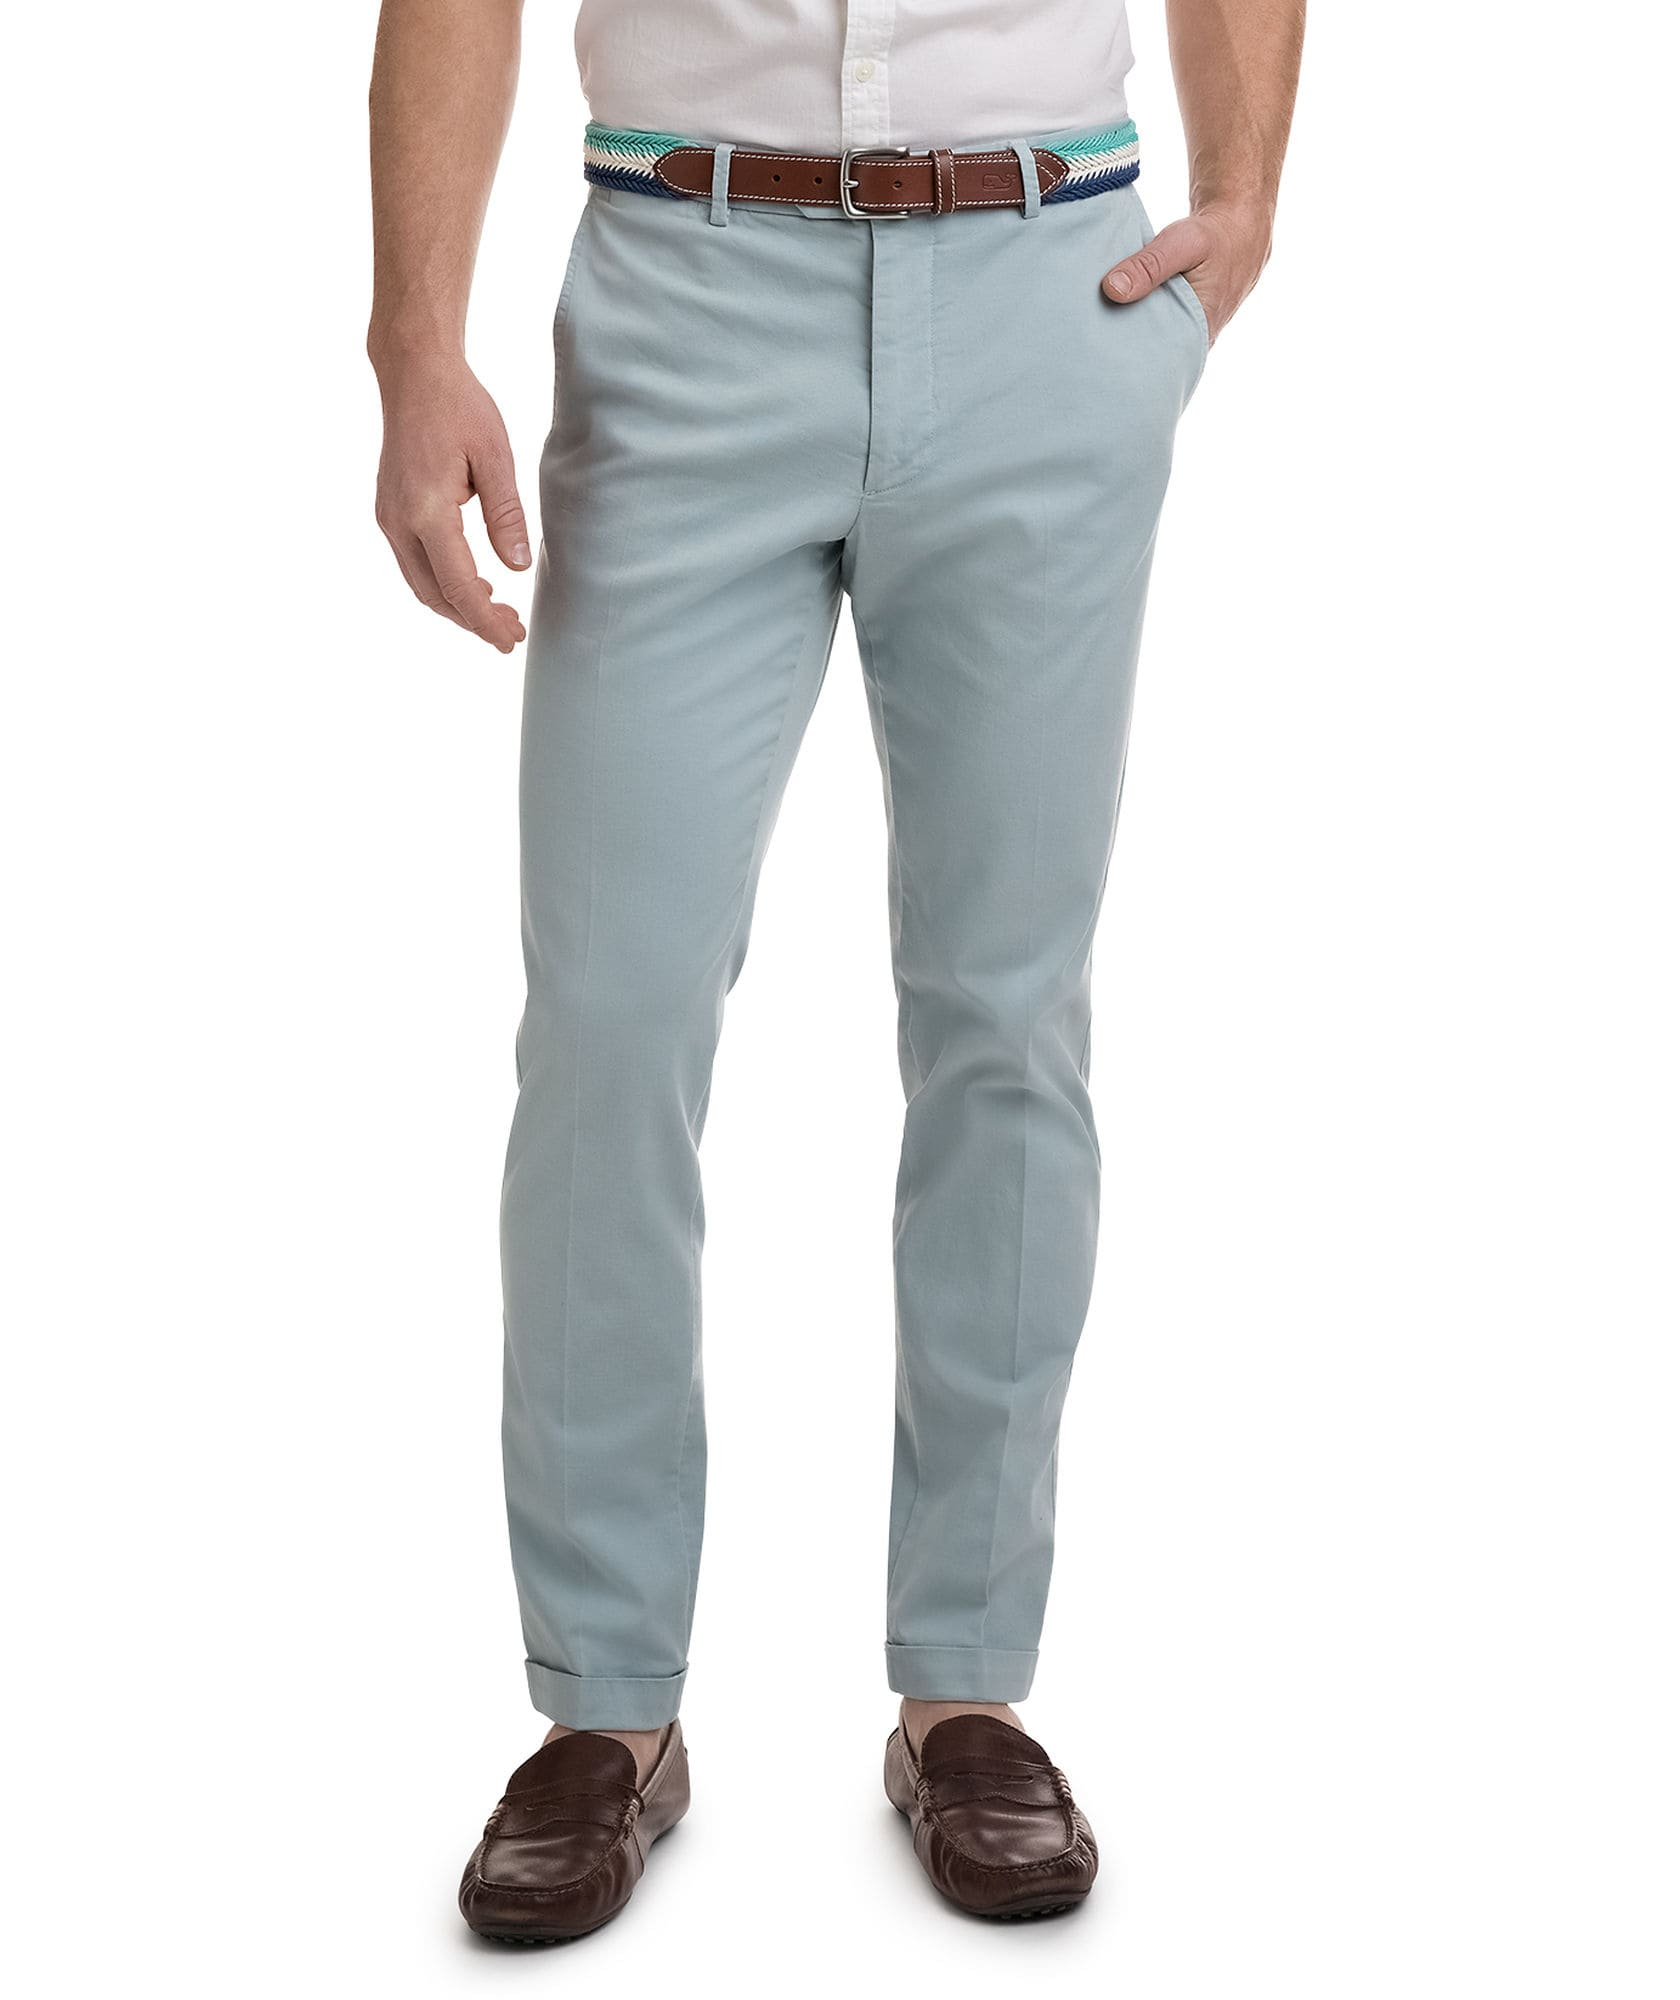 The Greenwich Chino Pants